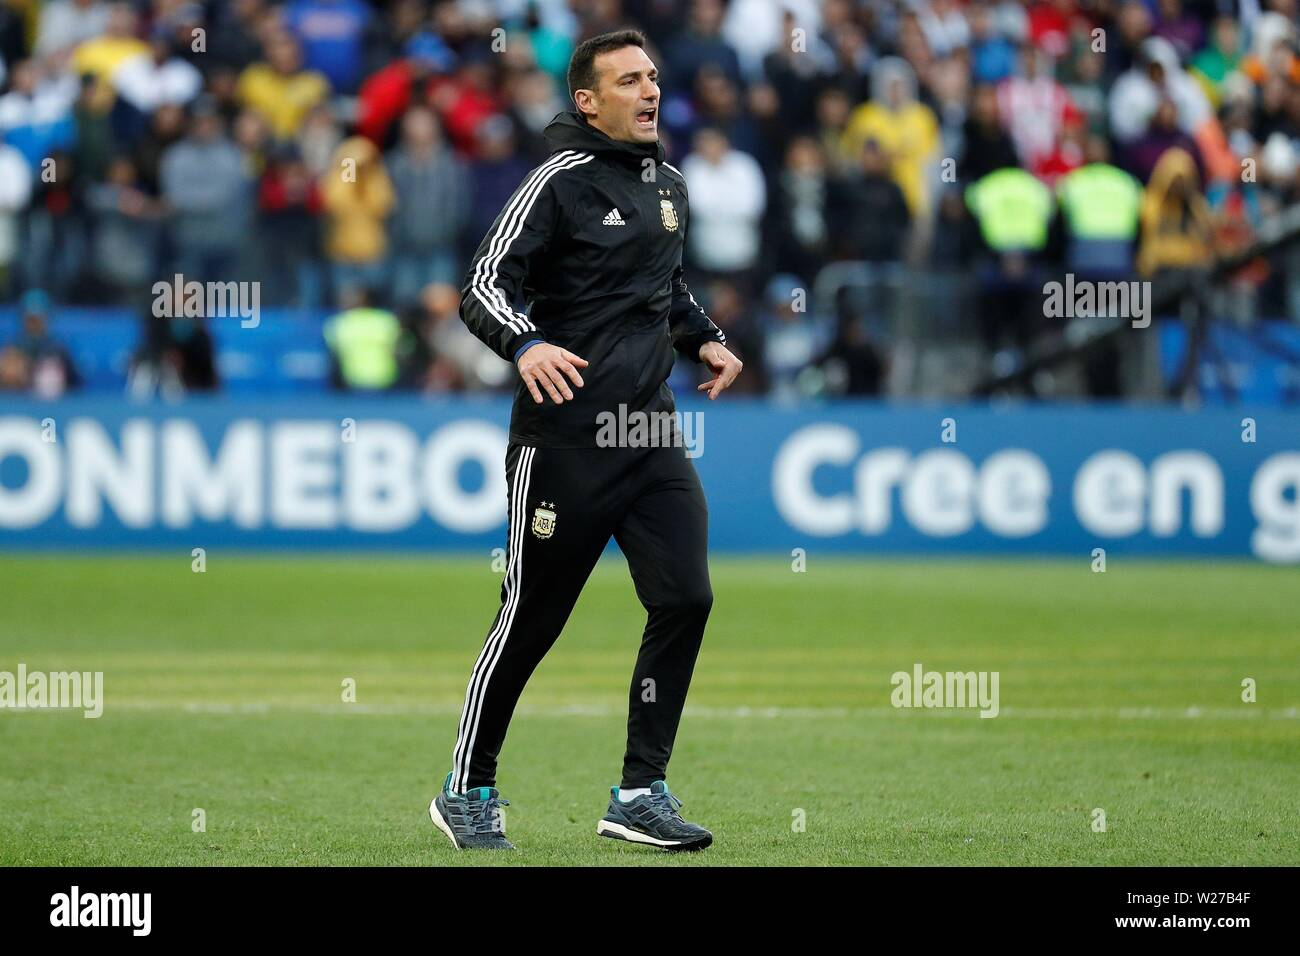 Sao Paulo, Brazil. 06th July, 2019. Argentine head coach Lionel Scaloni reacts, during the Copa America 2019 3rd place soccer match between Argentina and Chile, at Arena Corinthians Stadium in Sao Paulo, Brazil, 6 July 2019. Credit: Sebastiao Moreira/EFE/Alamy Live News - Stock Image